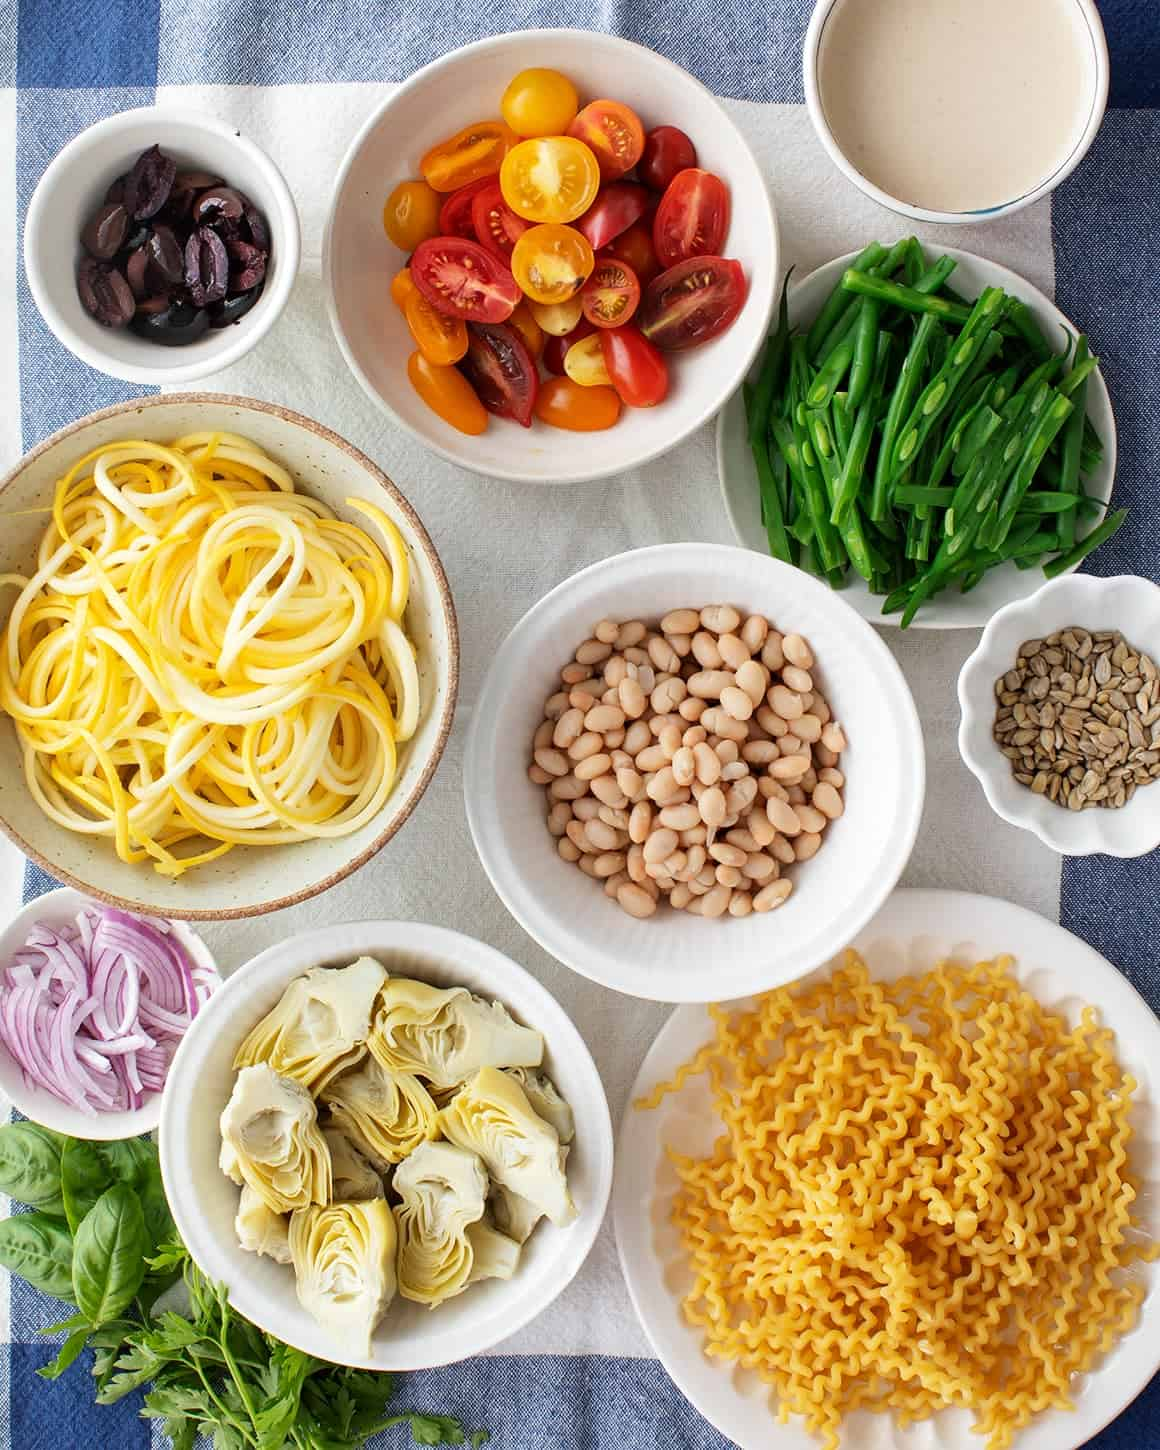 Vegan pasta salad recipe ingredients